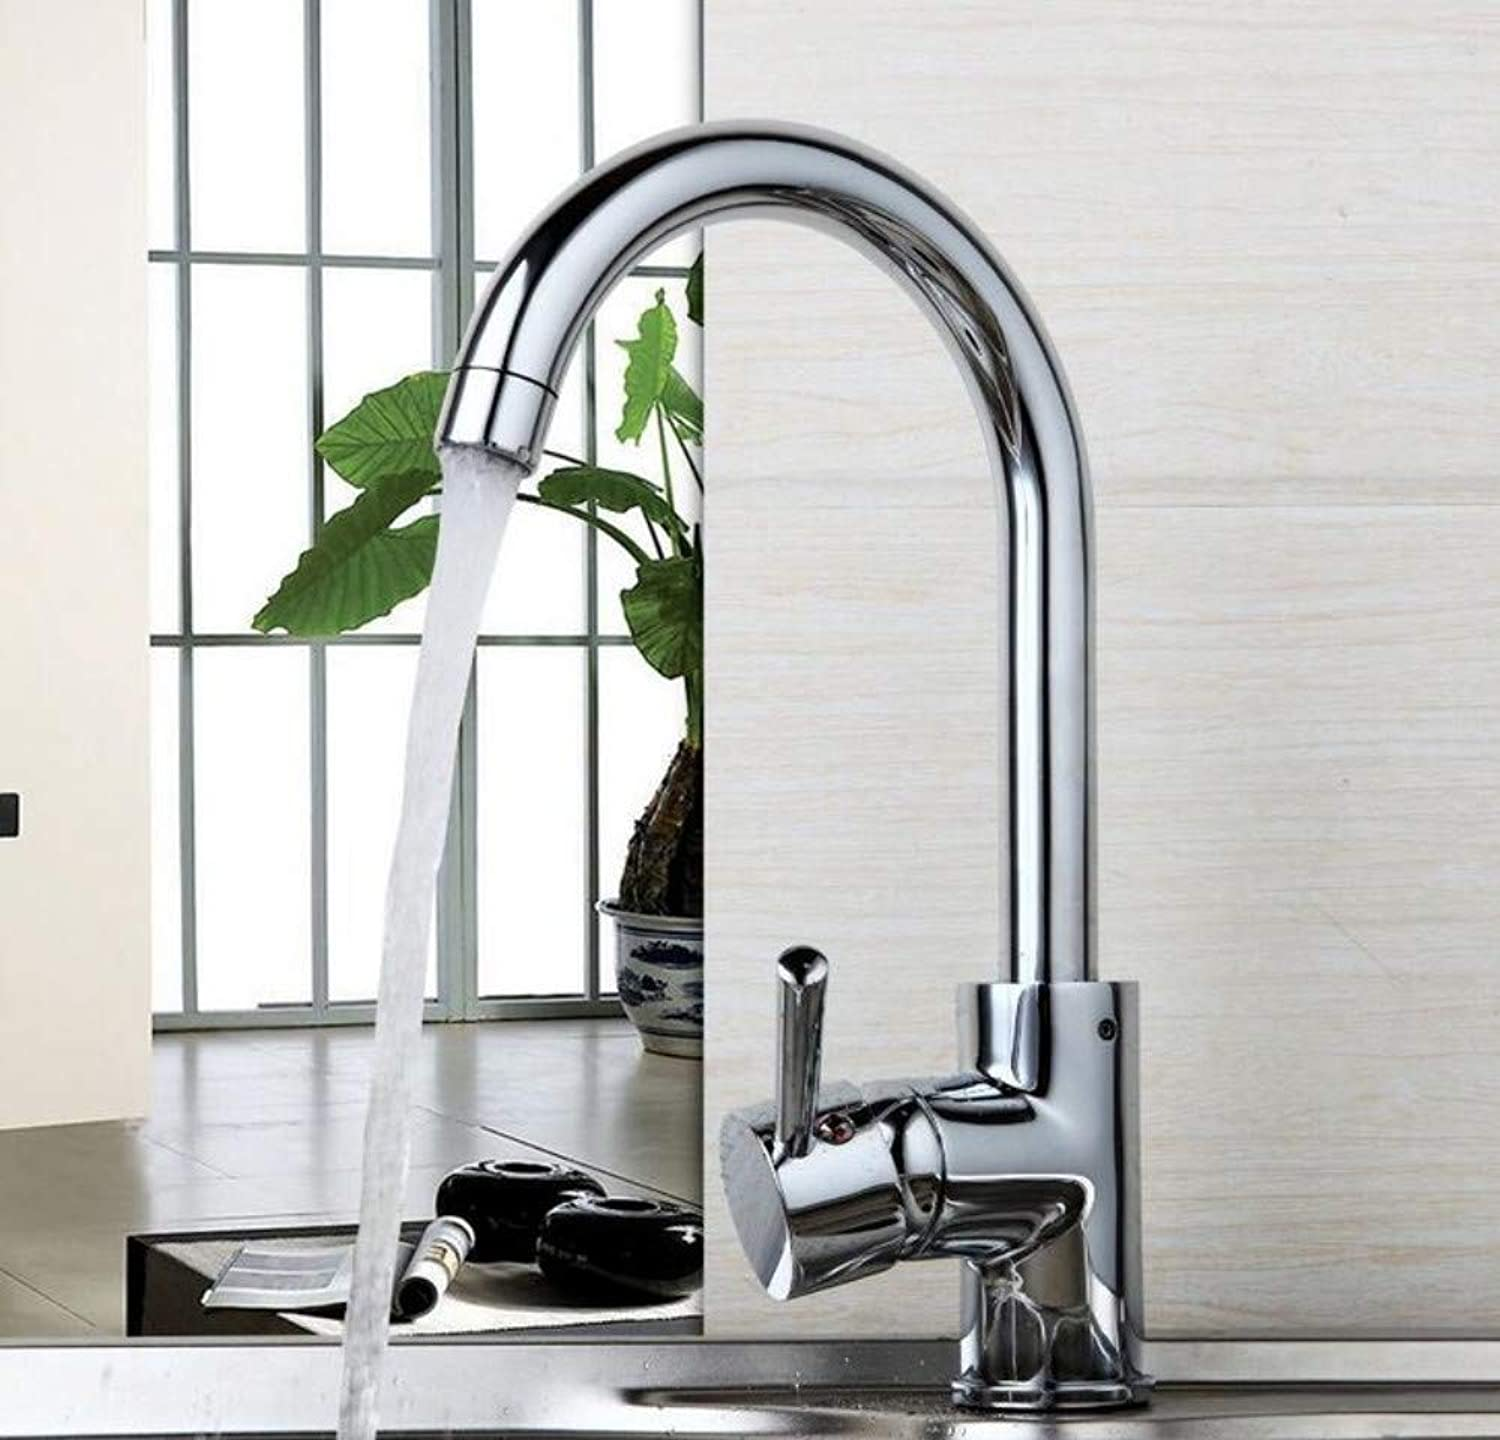 Faucet Kitchen Washing Basin 360 Swivel Luxury Stream Spout Deck Mounted Faucet Chrome Brass Tap Hot & Cold Water Mixer Kitchen Faucets Sink Taps